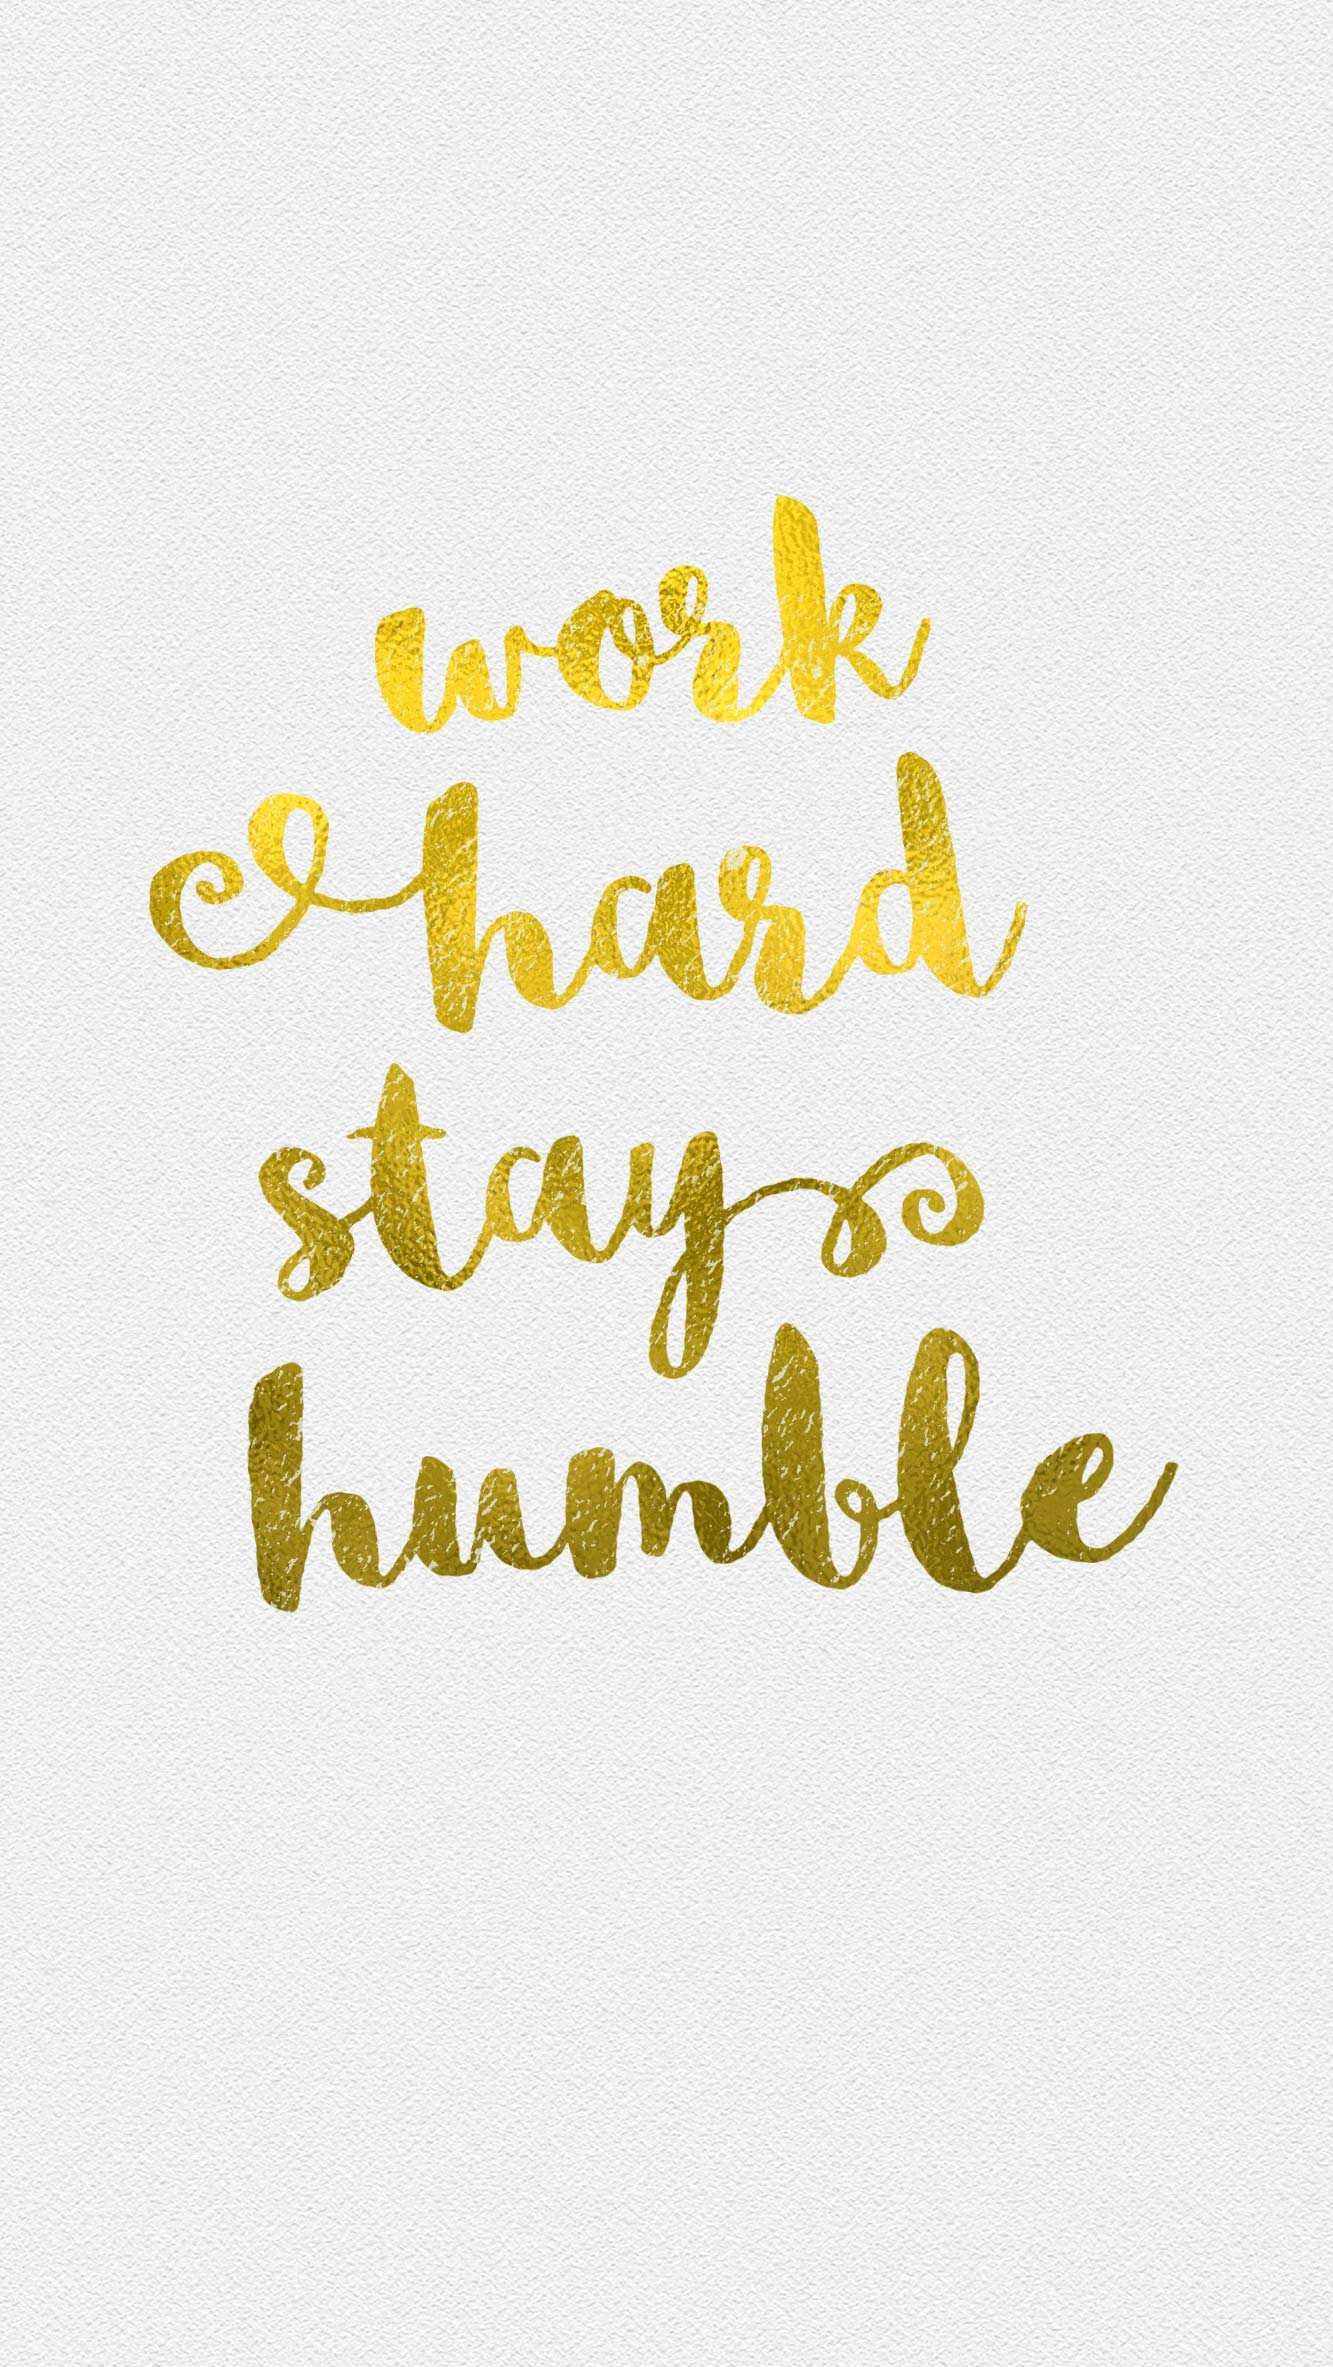 White gld Work Humble iphone wallpaper phone background lock screen   quote  me please   Pinterest   Screens, Wallpaper and Phone